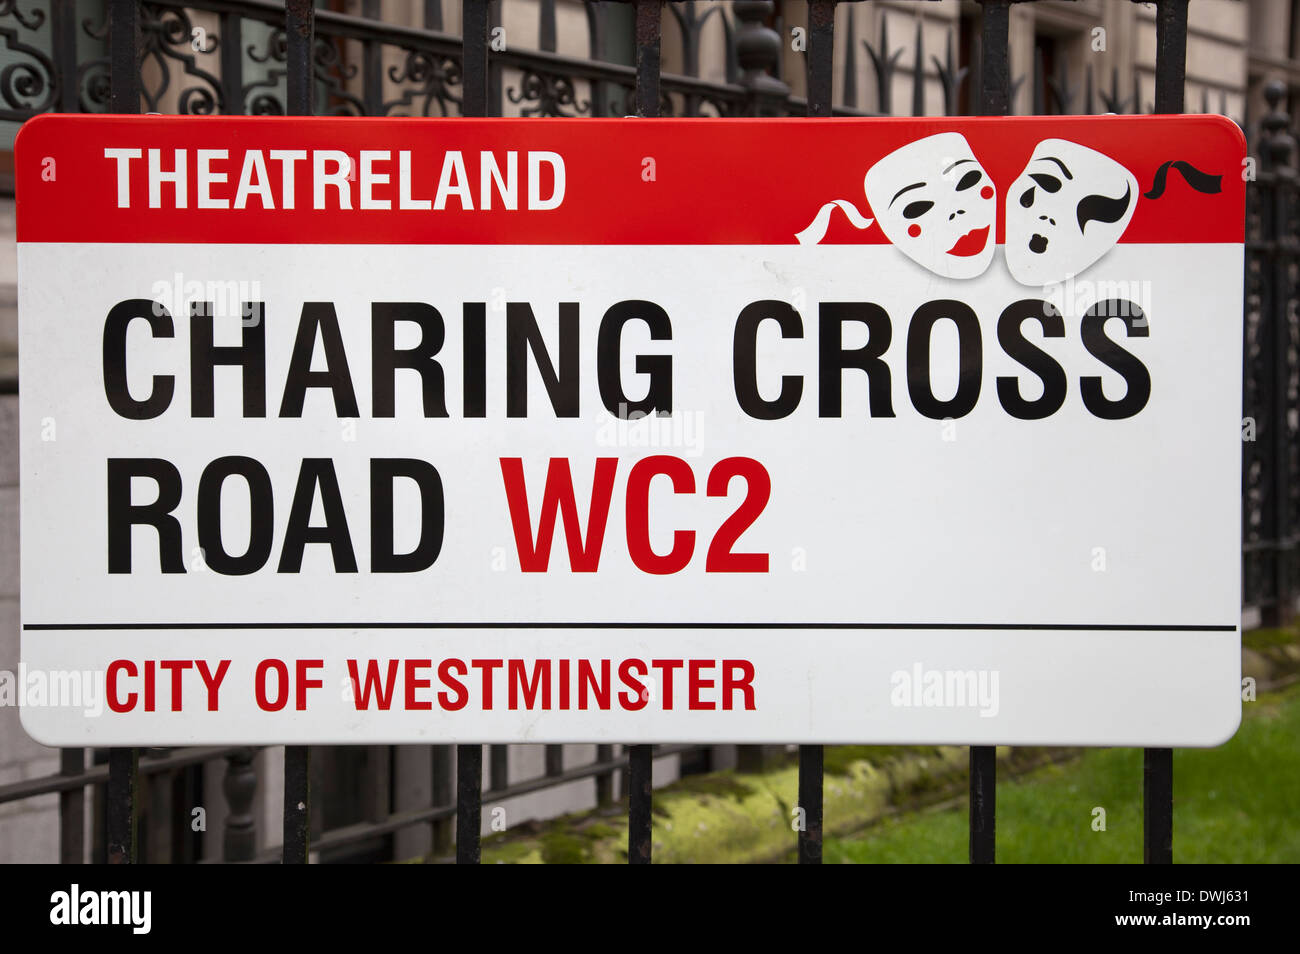 Charing Cross Theatreland WC2 Sign in London UK - Stock Image